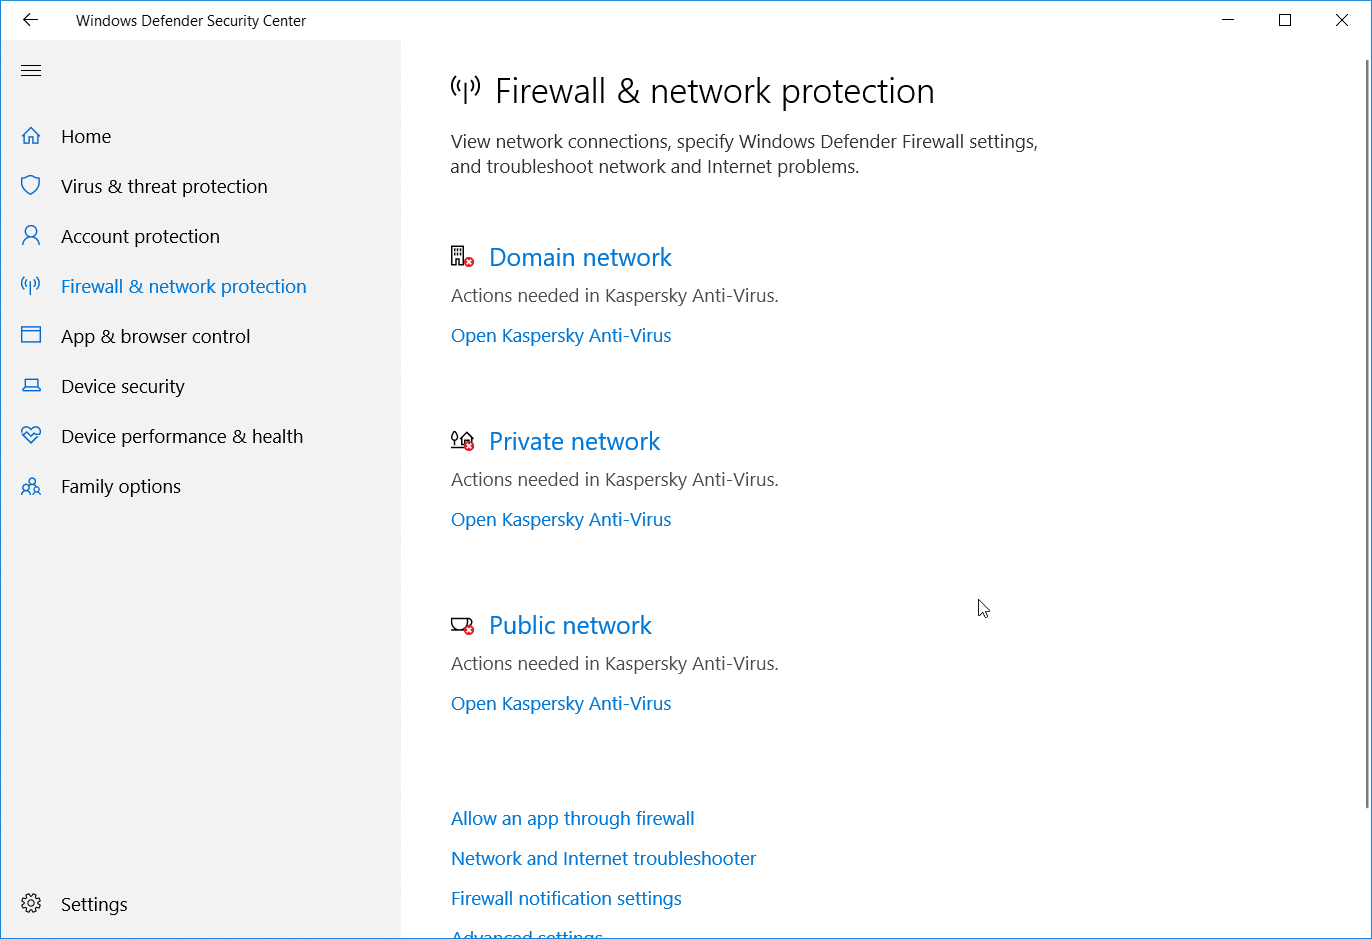 Firewall & network protection - Action needed in Kaspersky Anti-Virus (red X) fe799dbe-41a7-48e1-9969-e76695745ce0?upload=true.png